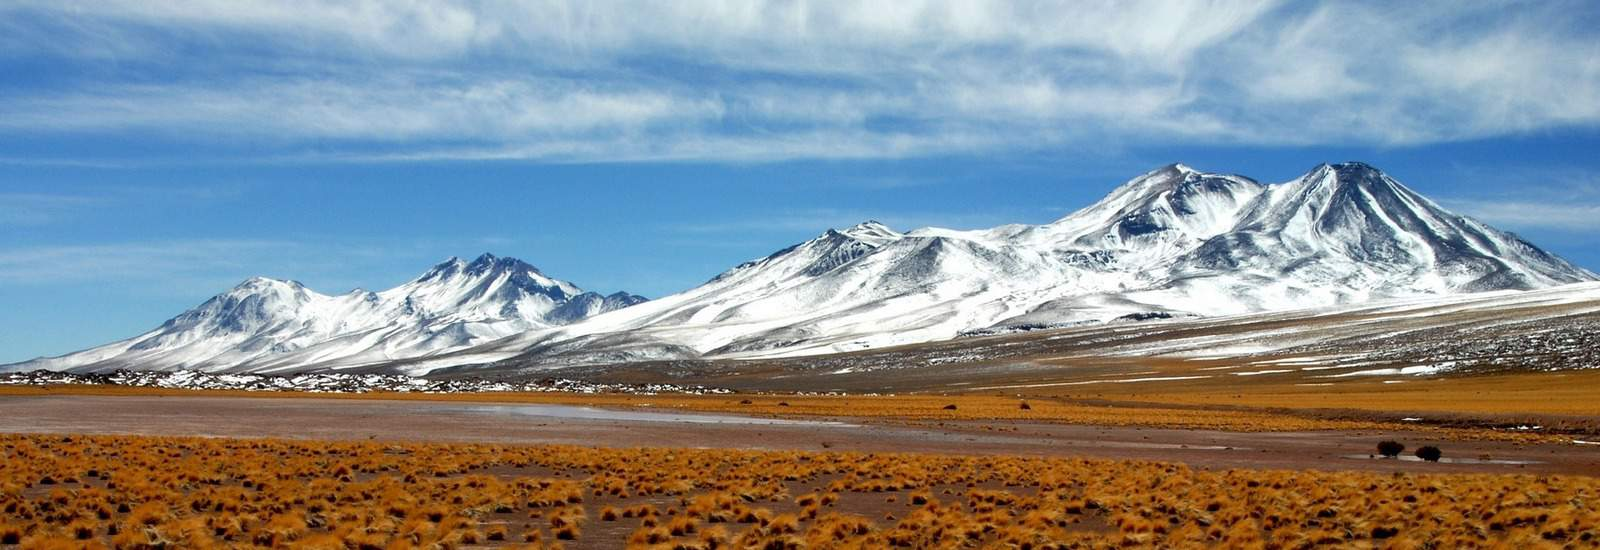 Ultimate Chile Travel Guide